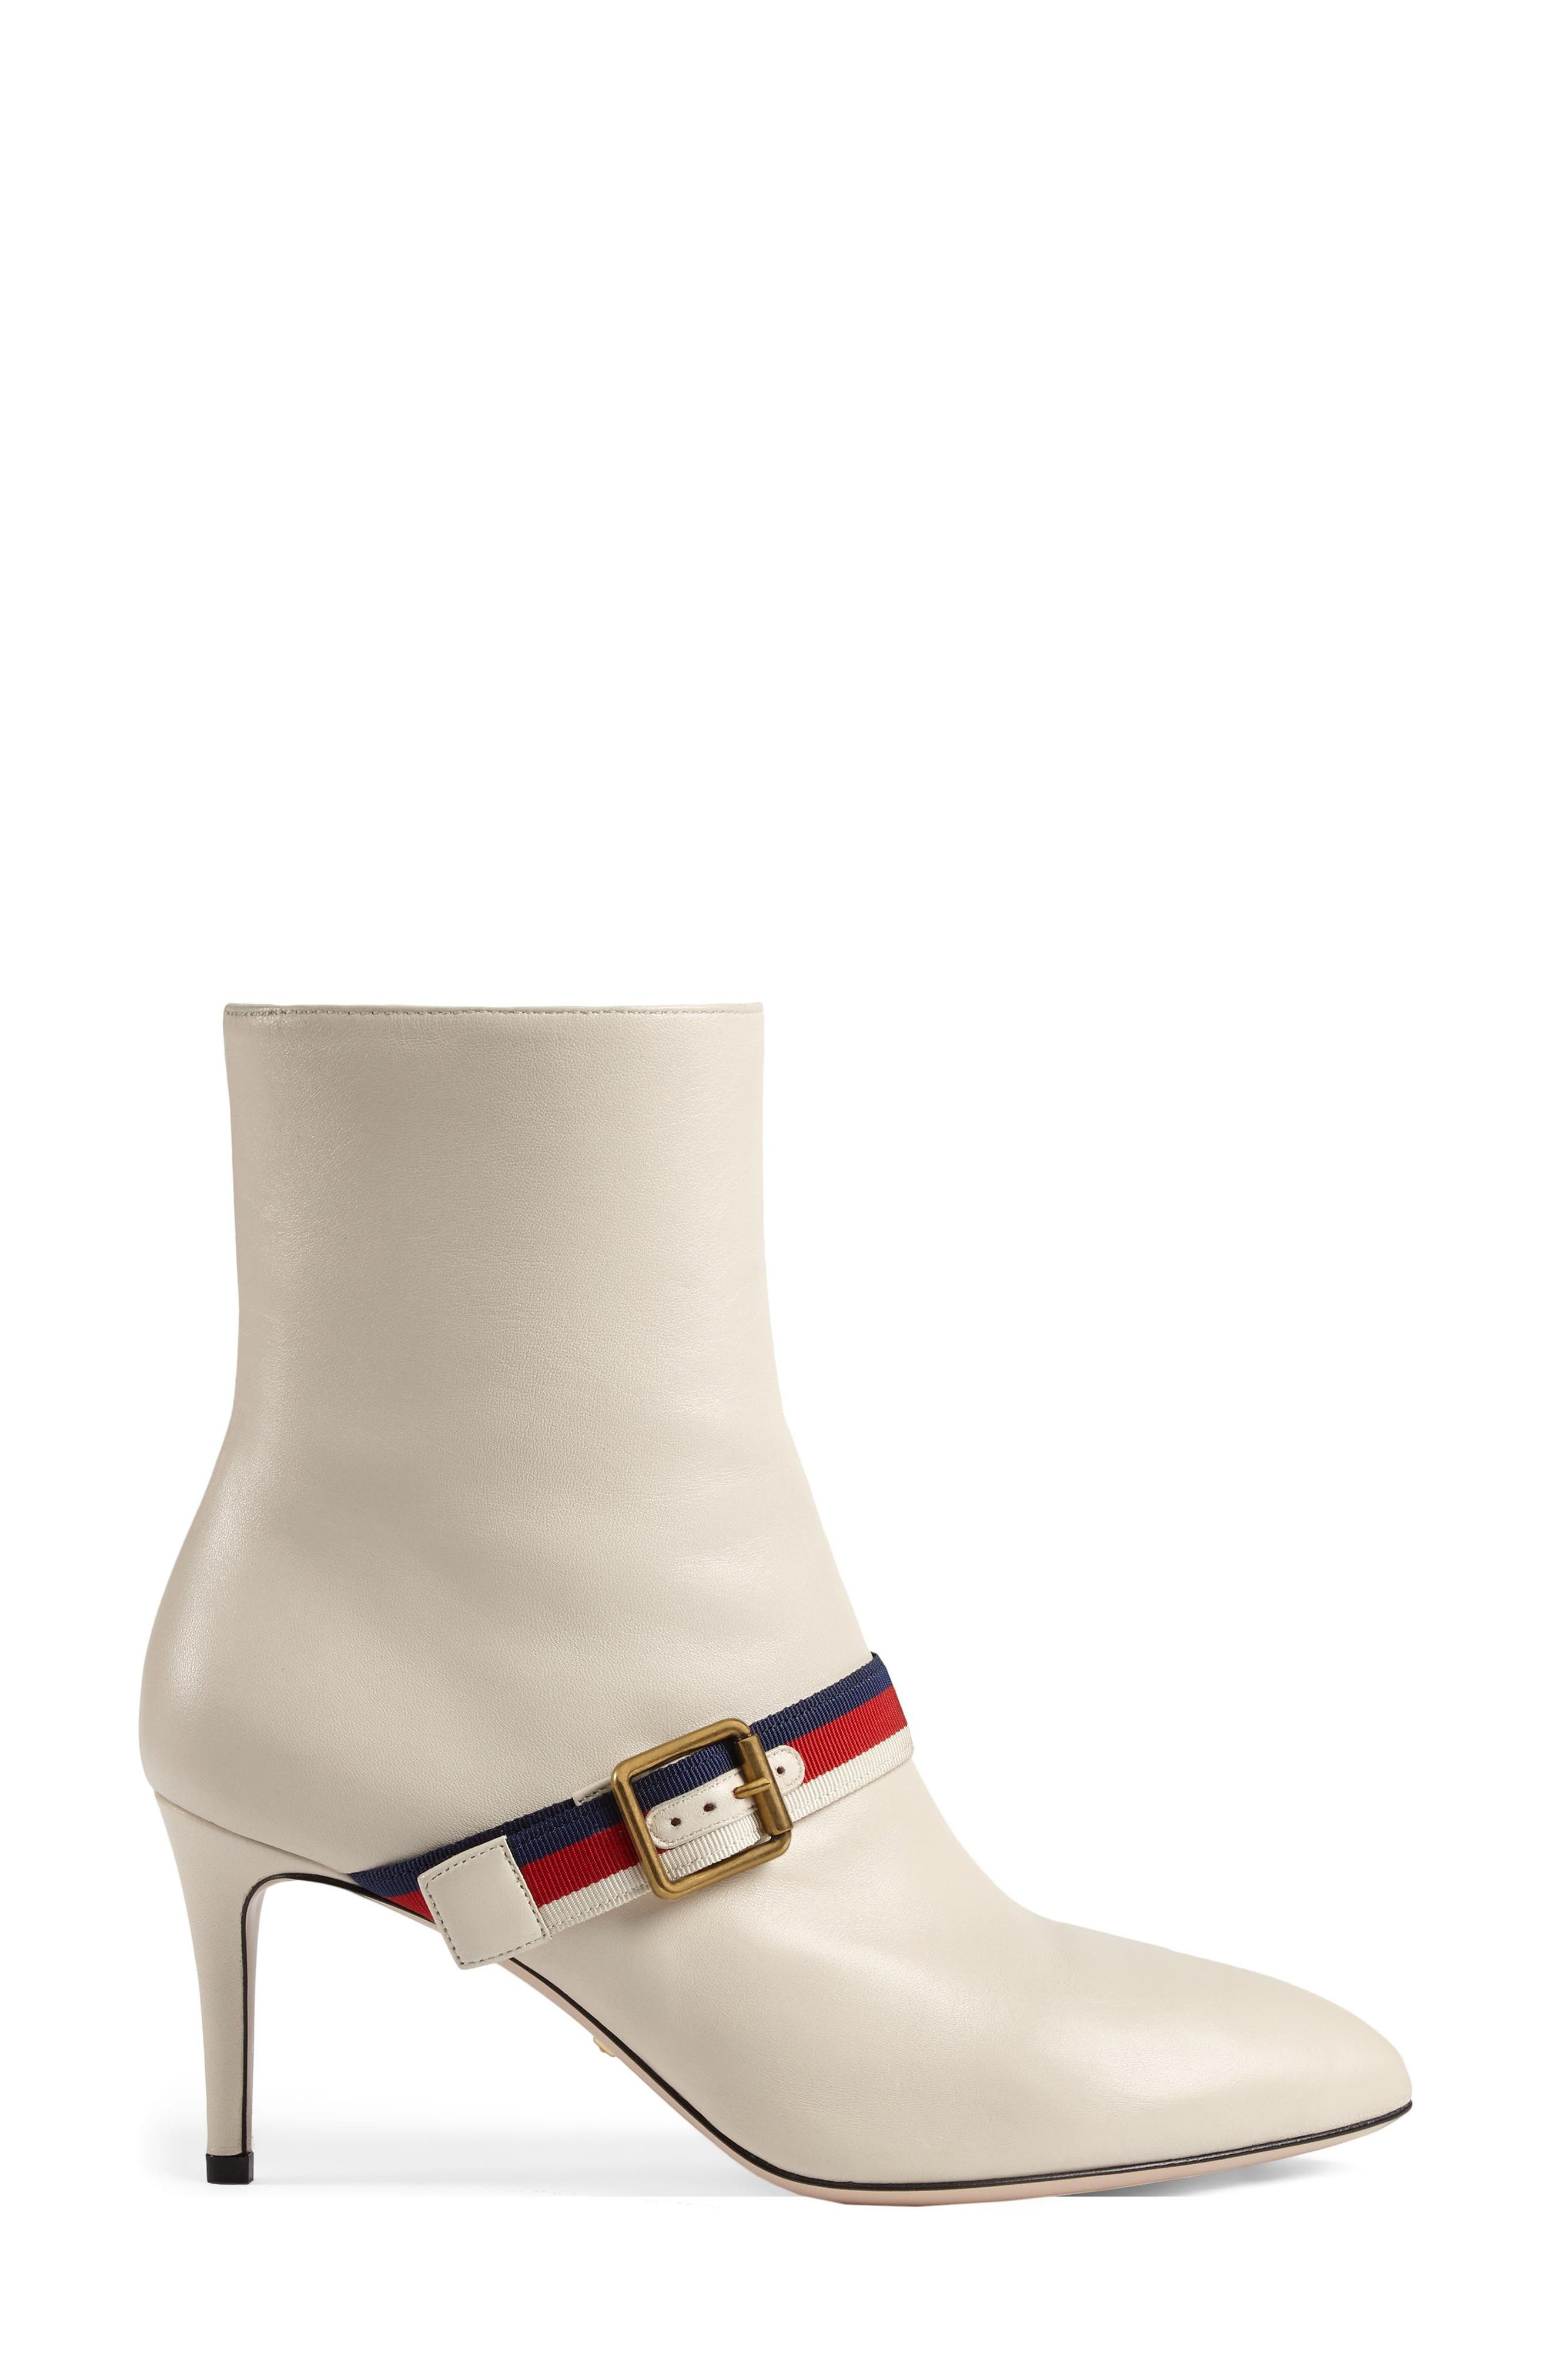 Main Image - Gucci Sylvie Strap Ankle Boot (Women)